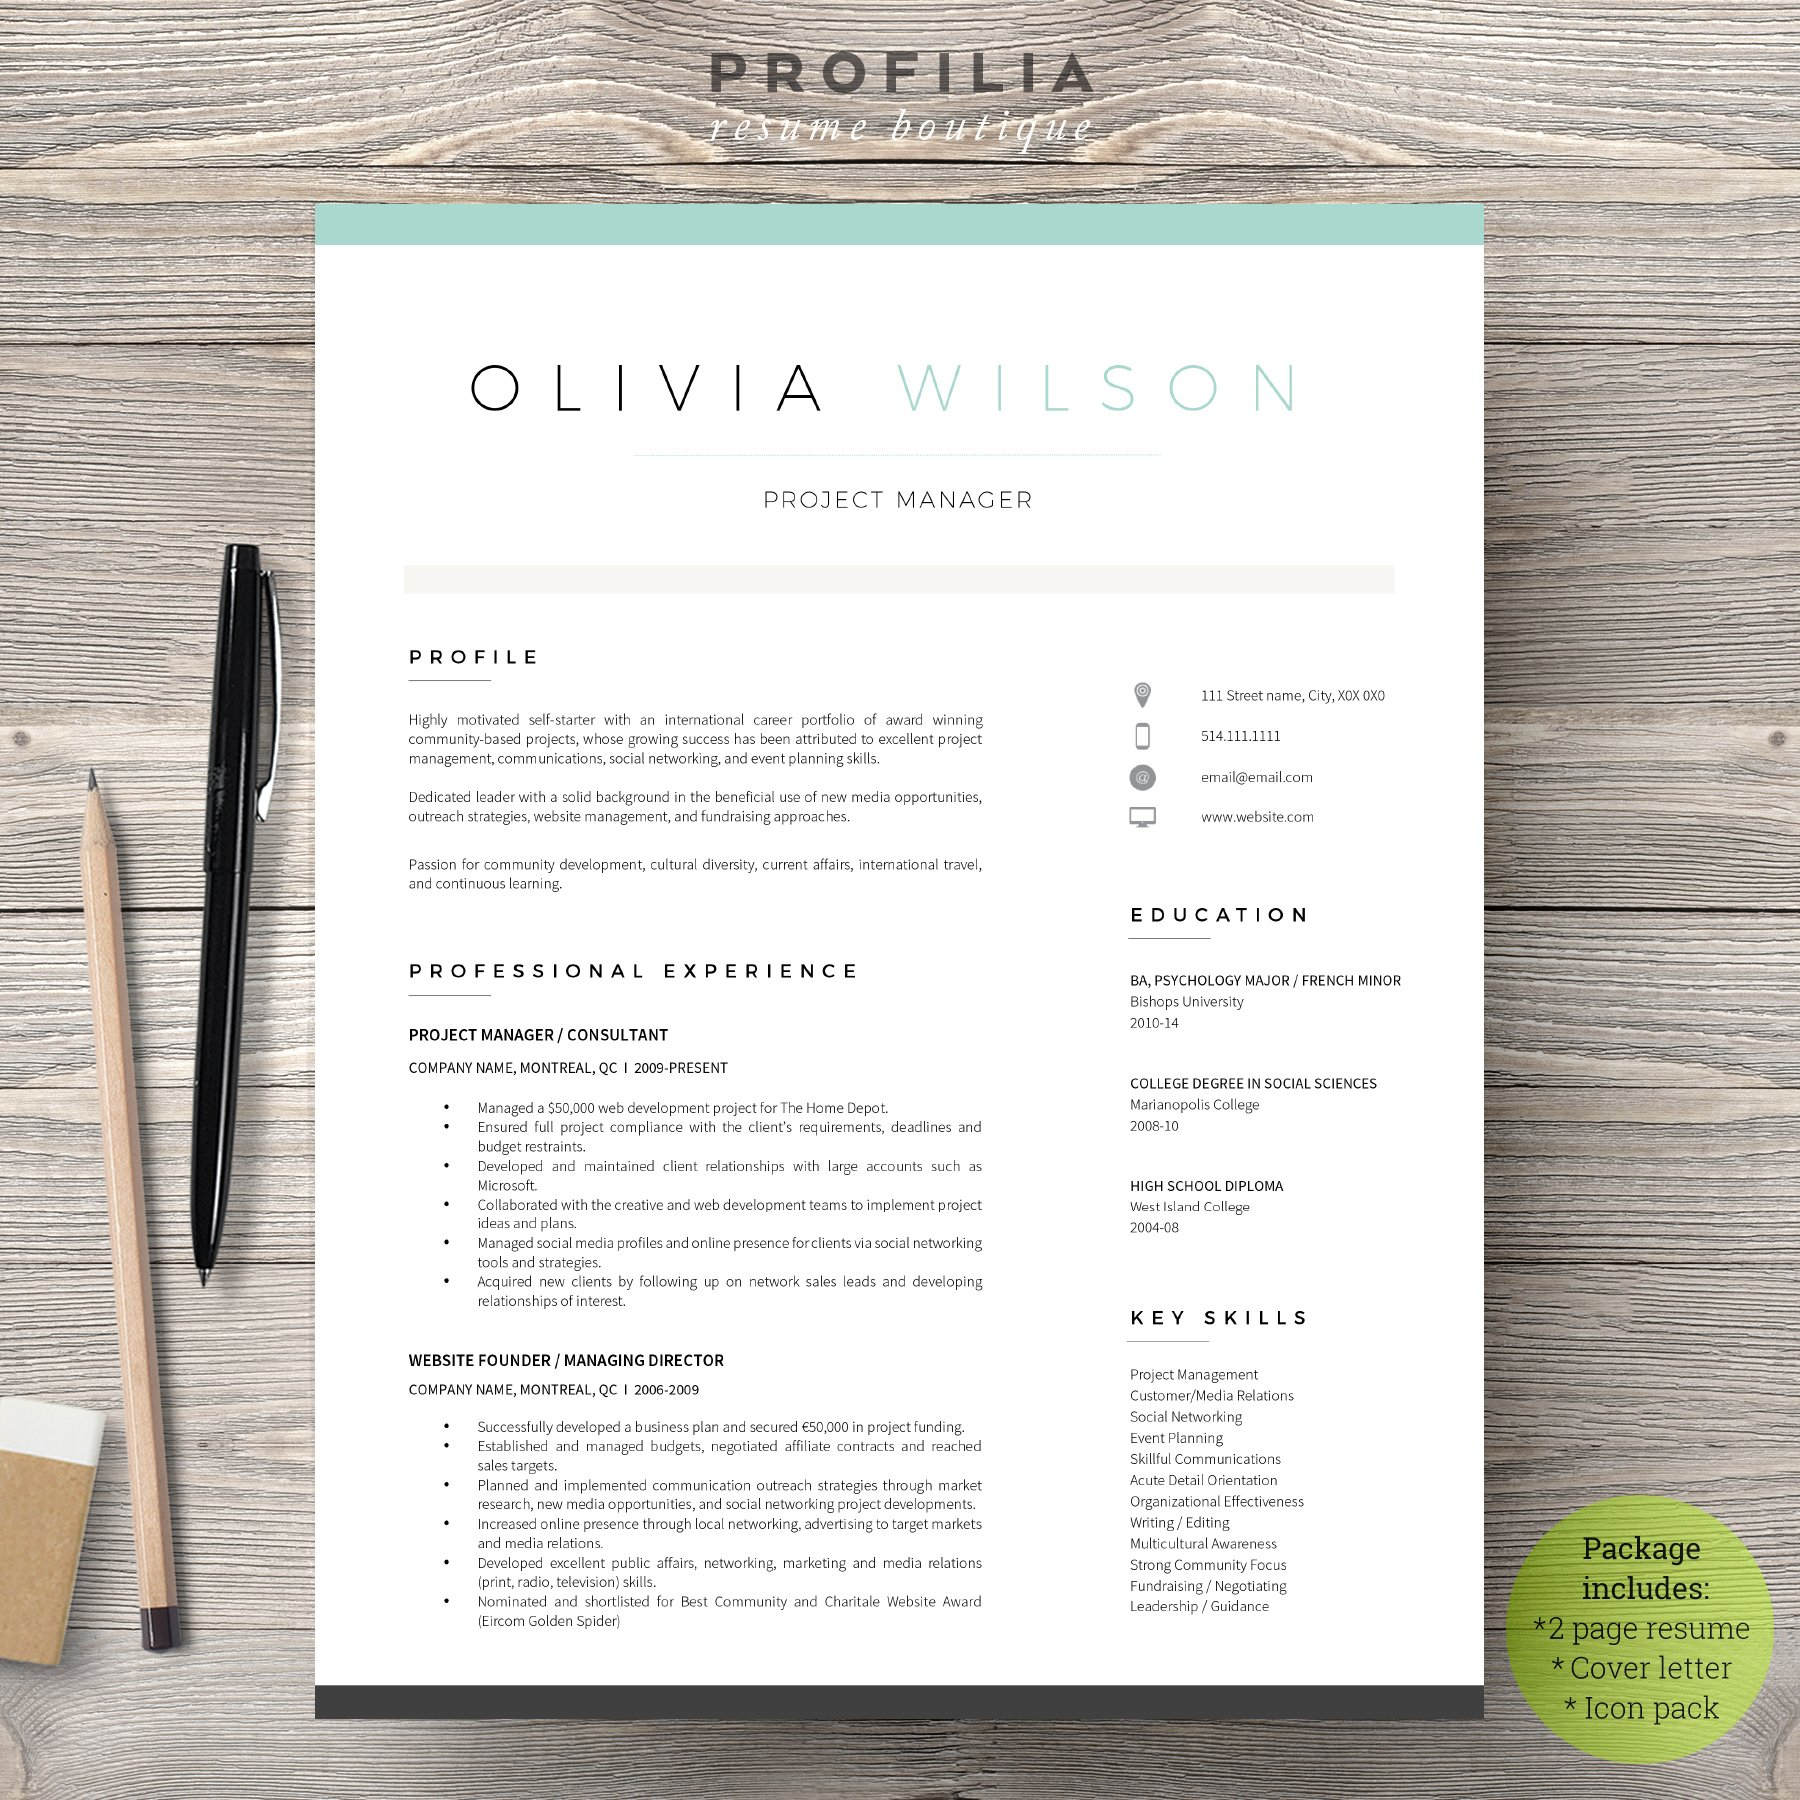 word resume cover letter template resume templates creative market - Free Word Resume Templates